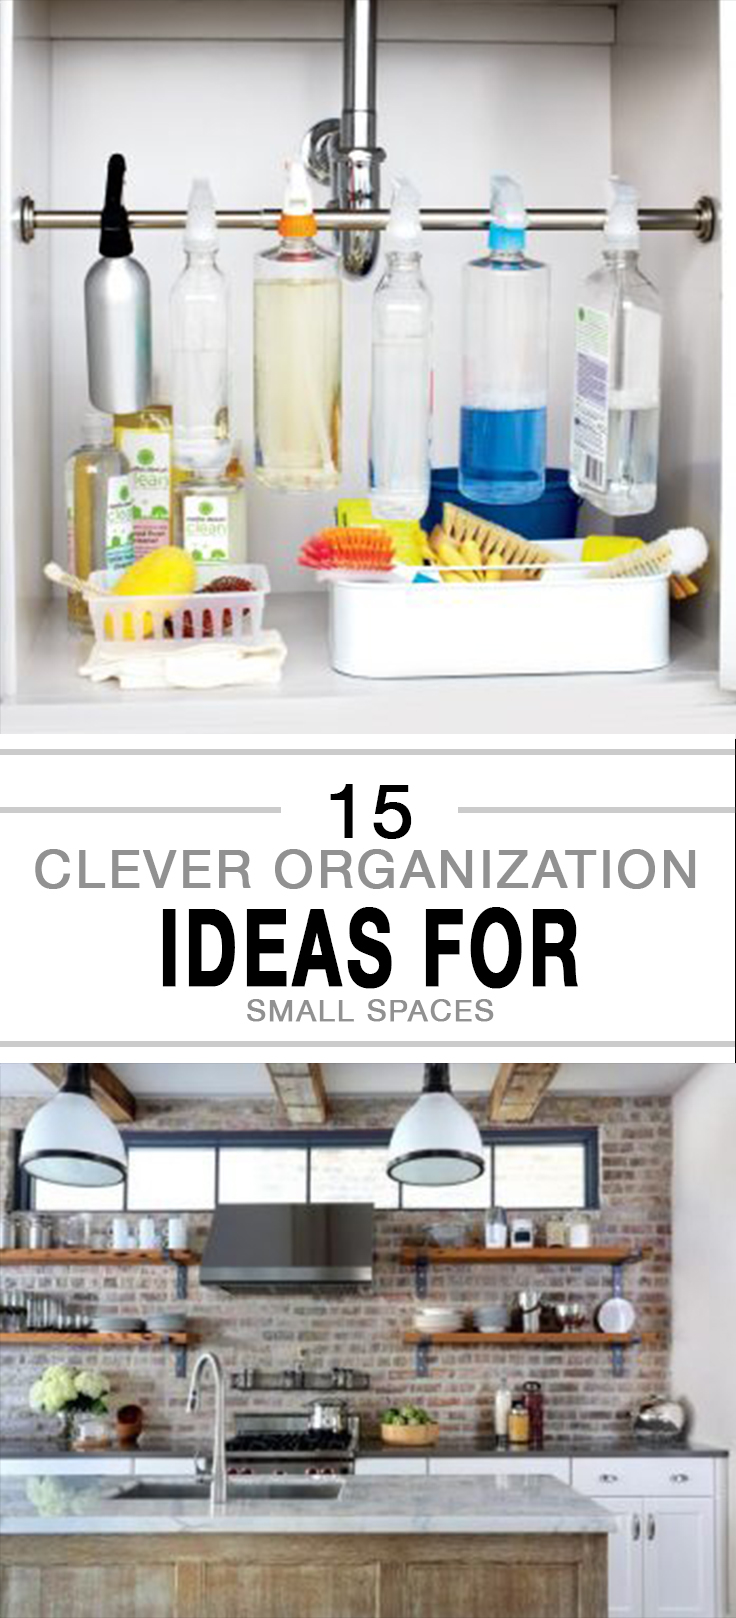 Home Organization 15 Clever Organization Ideas For Small Spaces